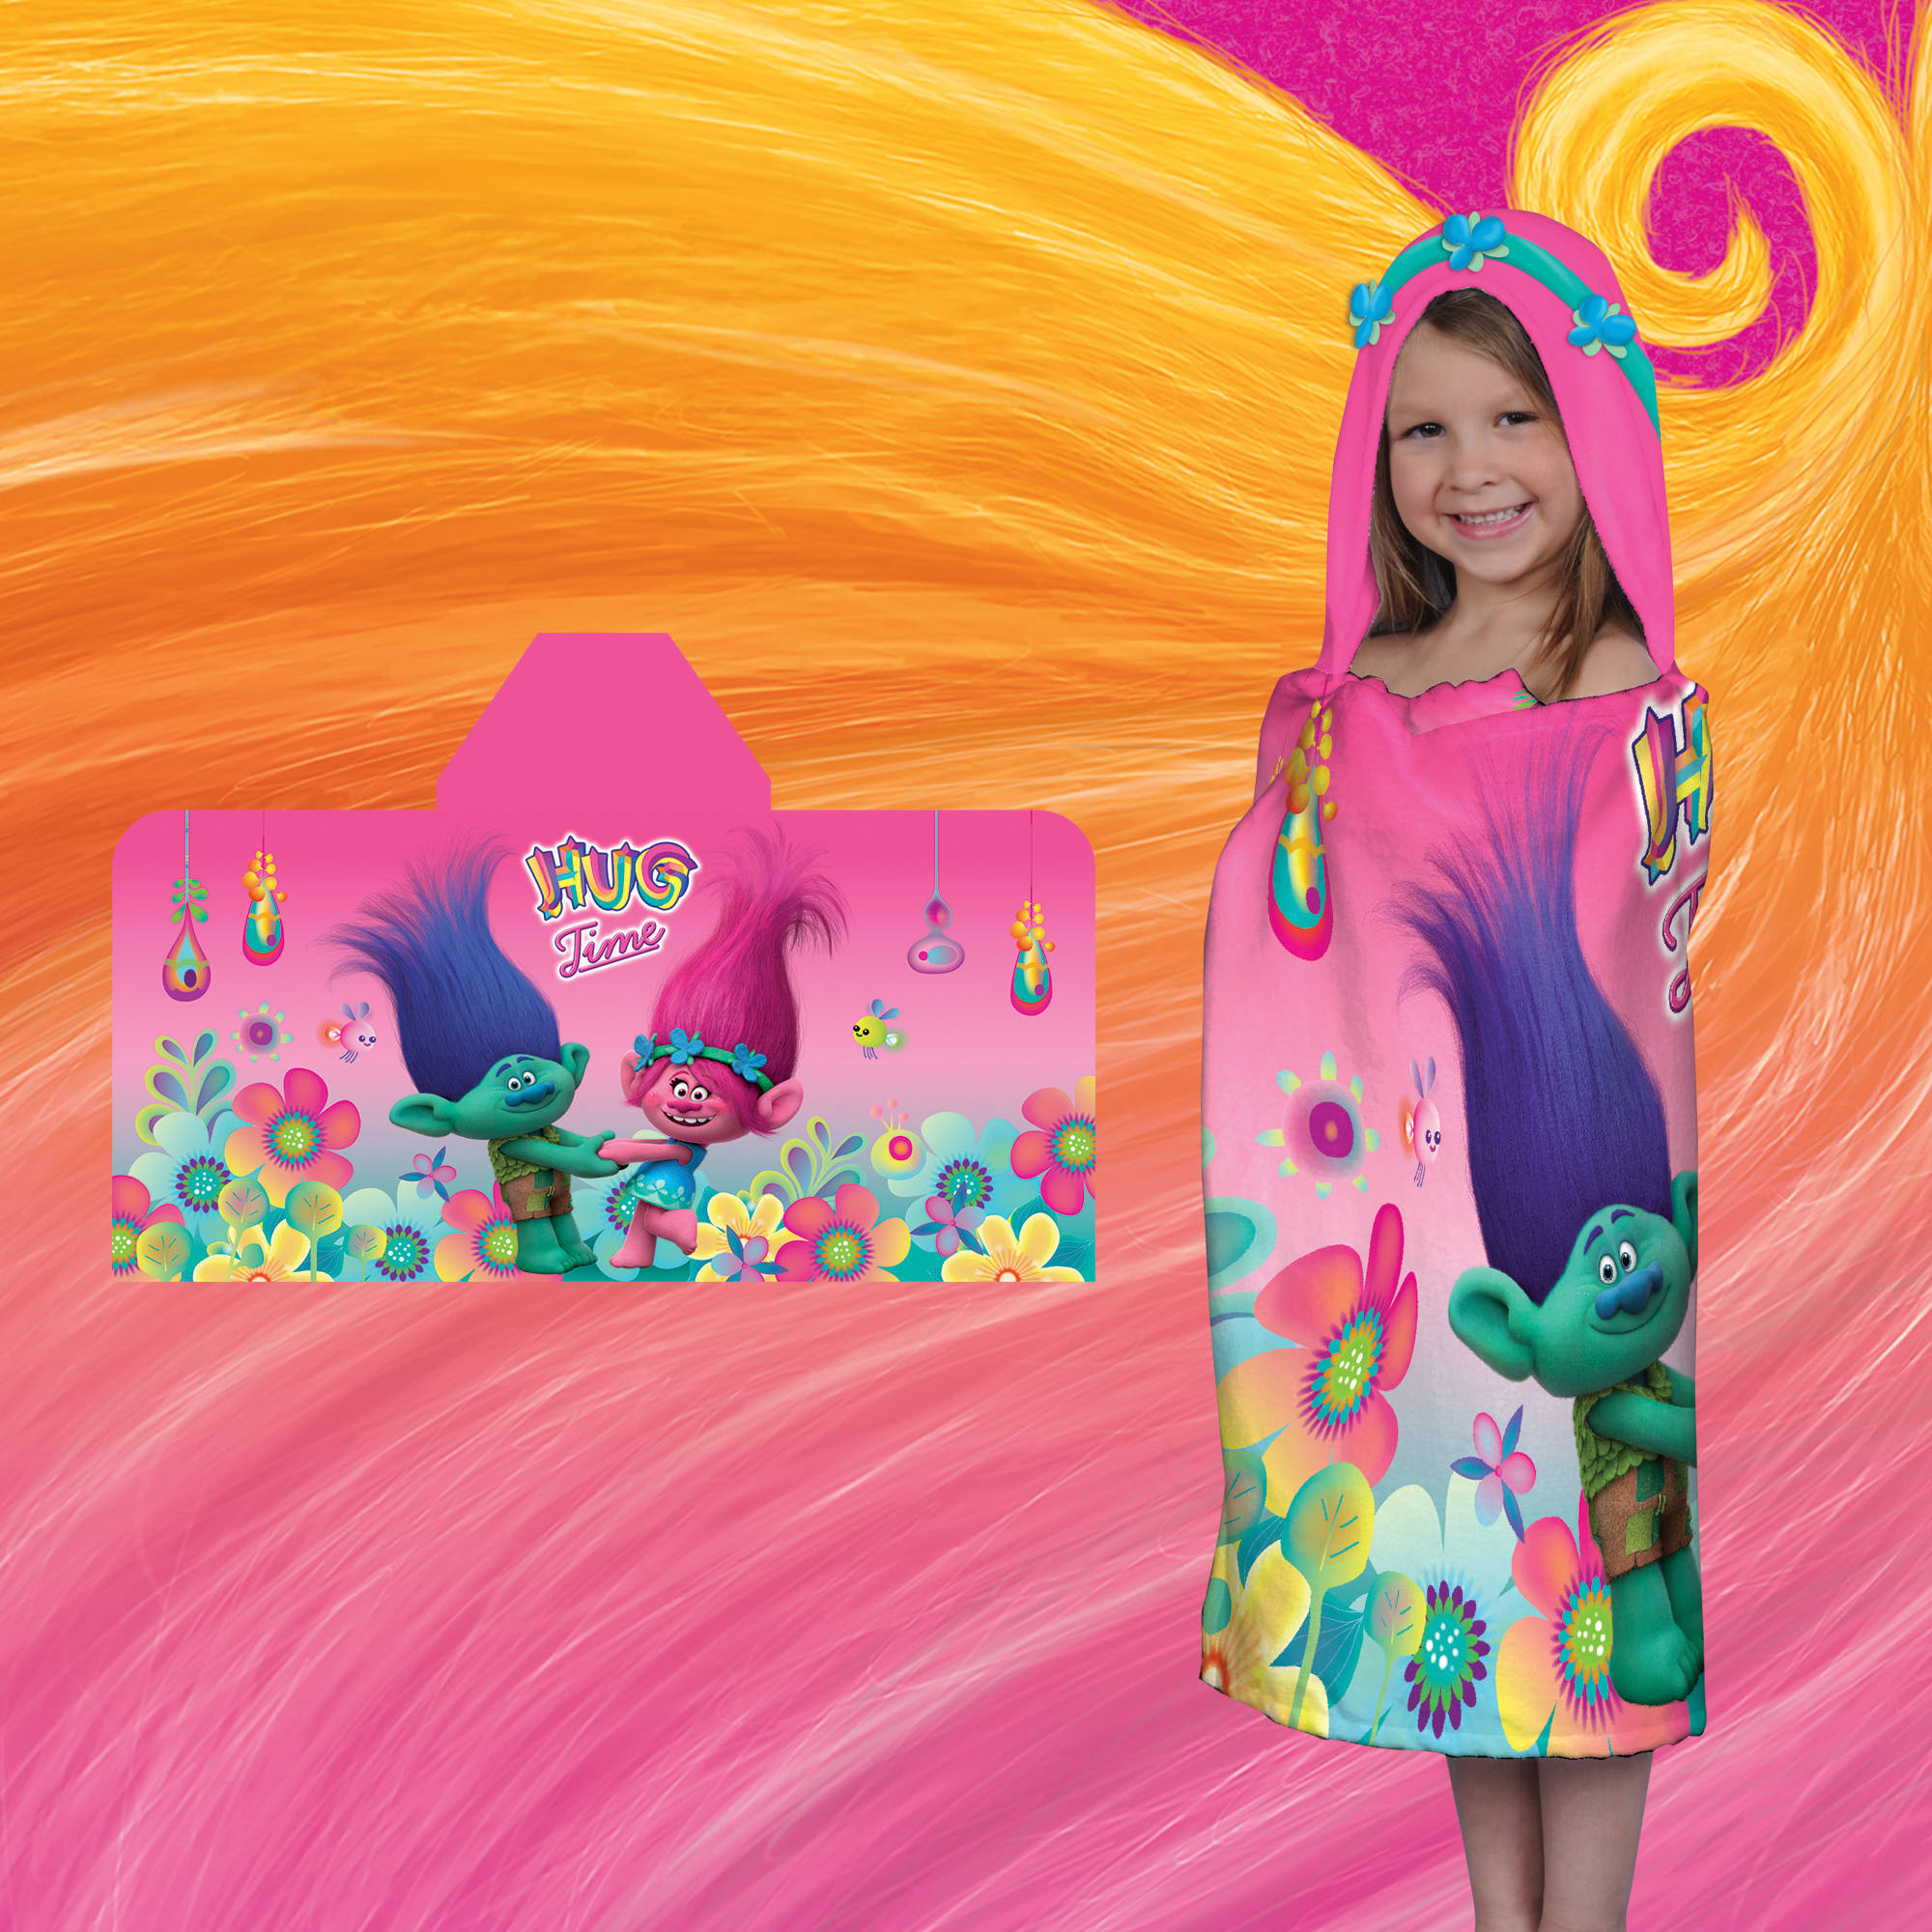 Dream Works' Trolls Hug Time Kids Hooded Bath Towel by Franco